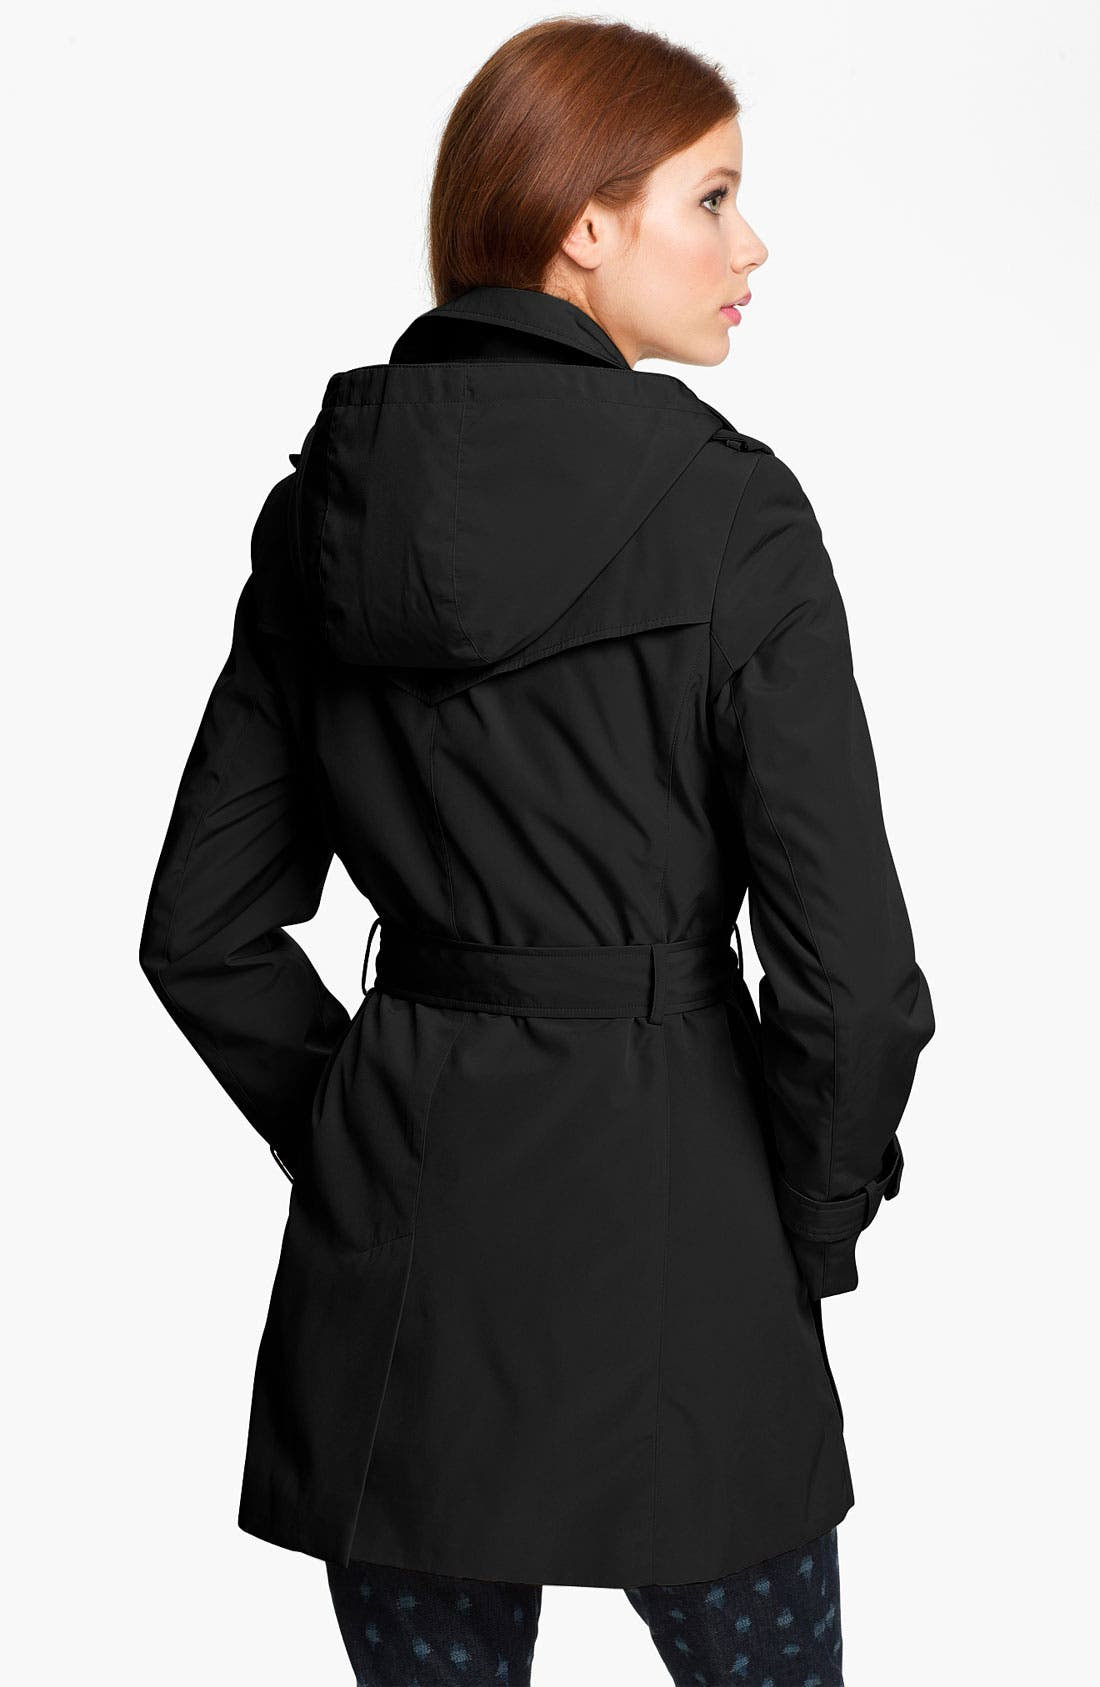 CALVIN KLEIN, Trench Coat with Detachable Liner, Alternate thumbnail 2, color, 001